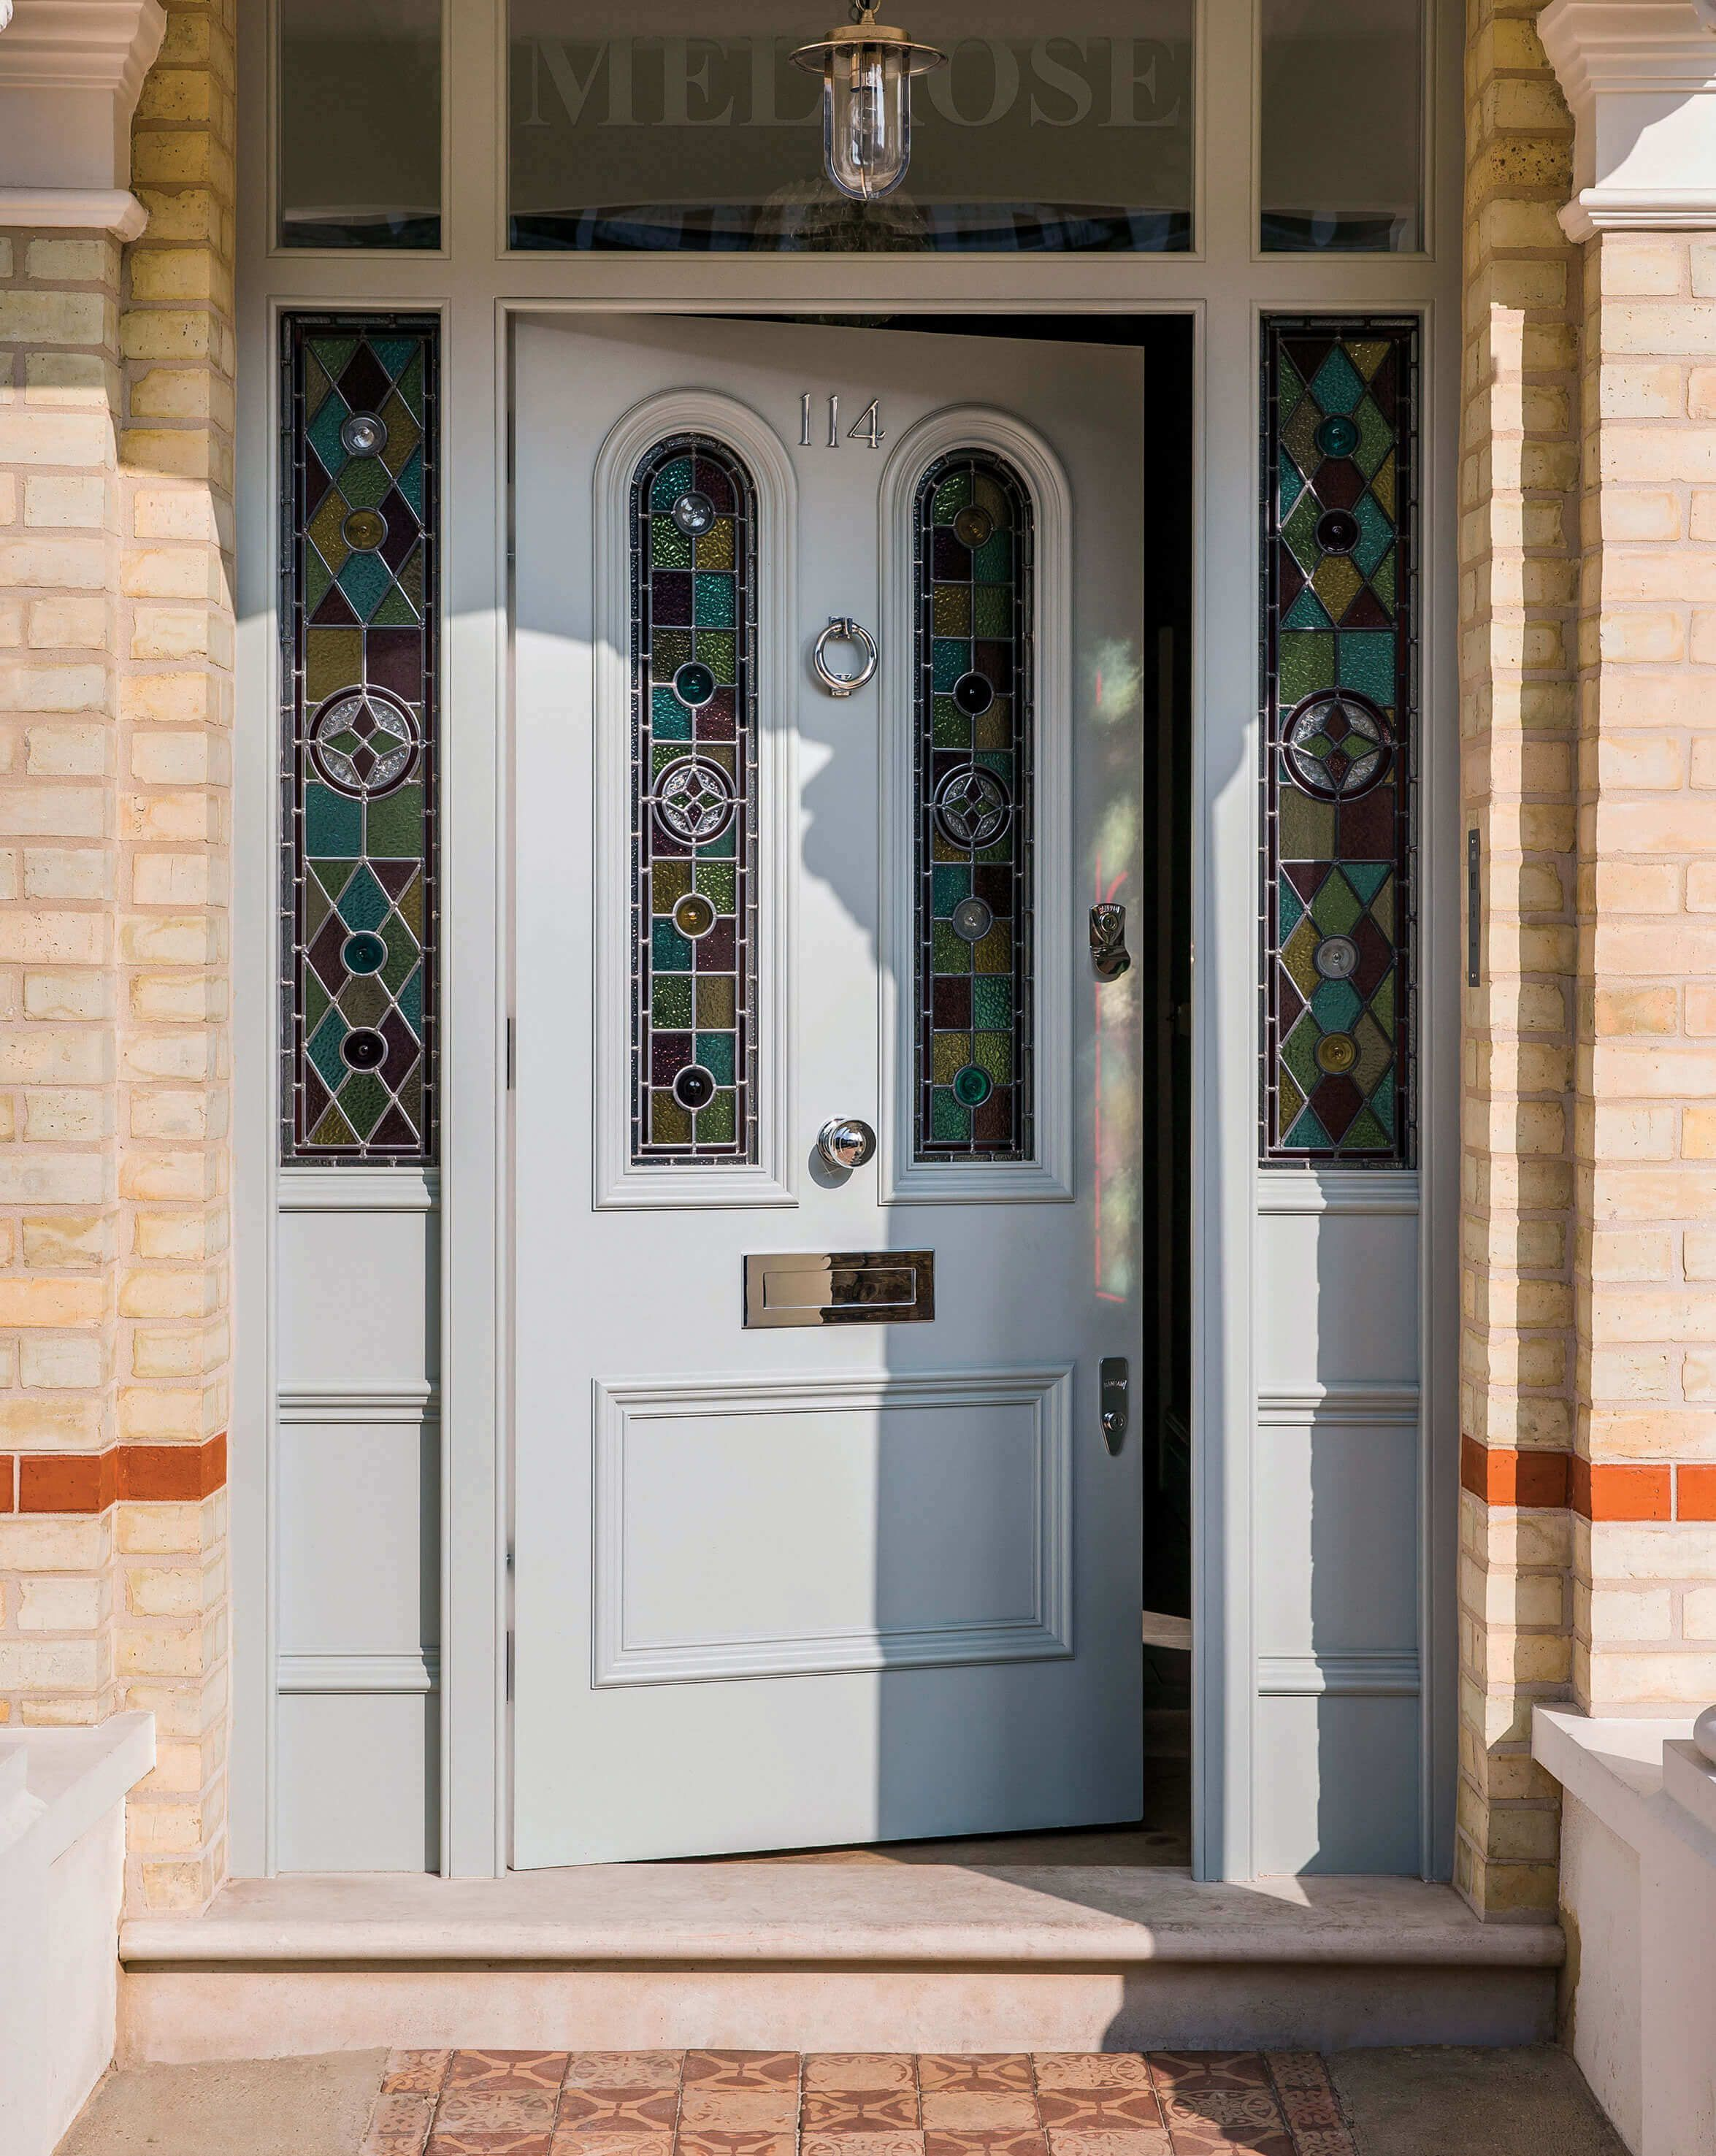 Extra thick Victorian glass door and doorframe with stained glass arches and chrome door furniture. A great example of a non-standard size Victorian front door. #victorianfrontdoors